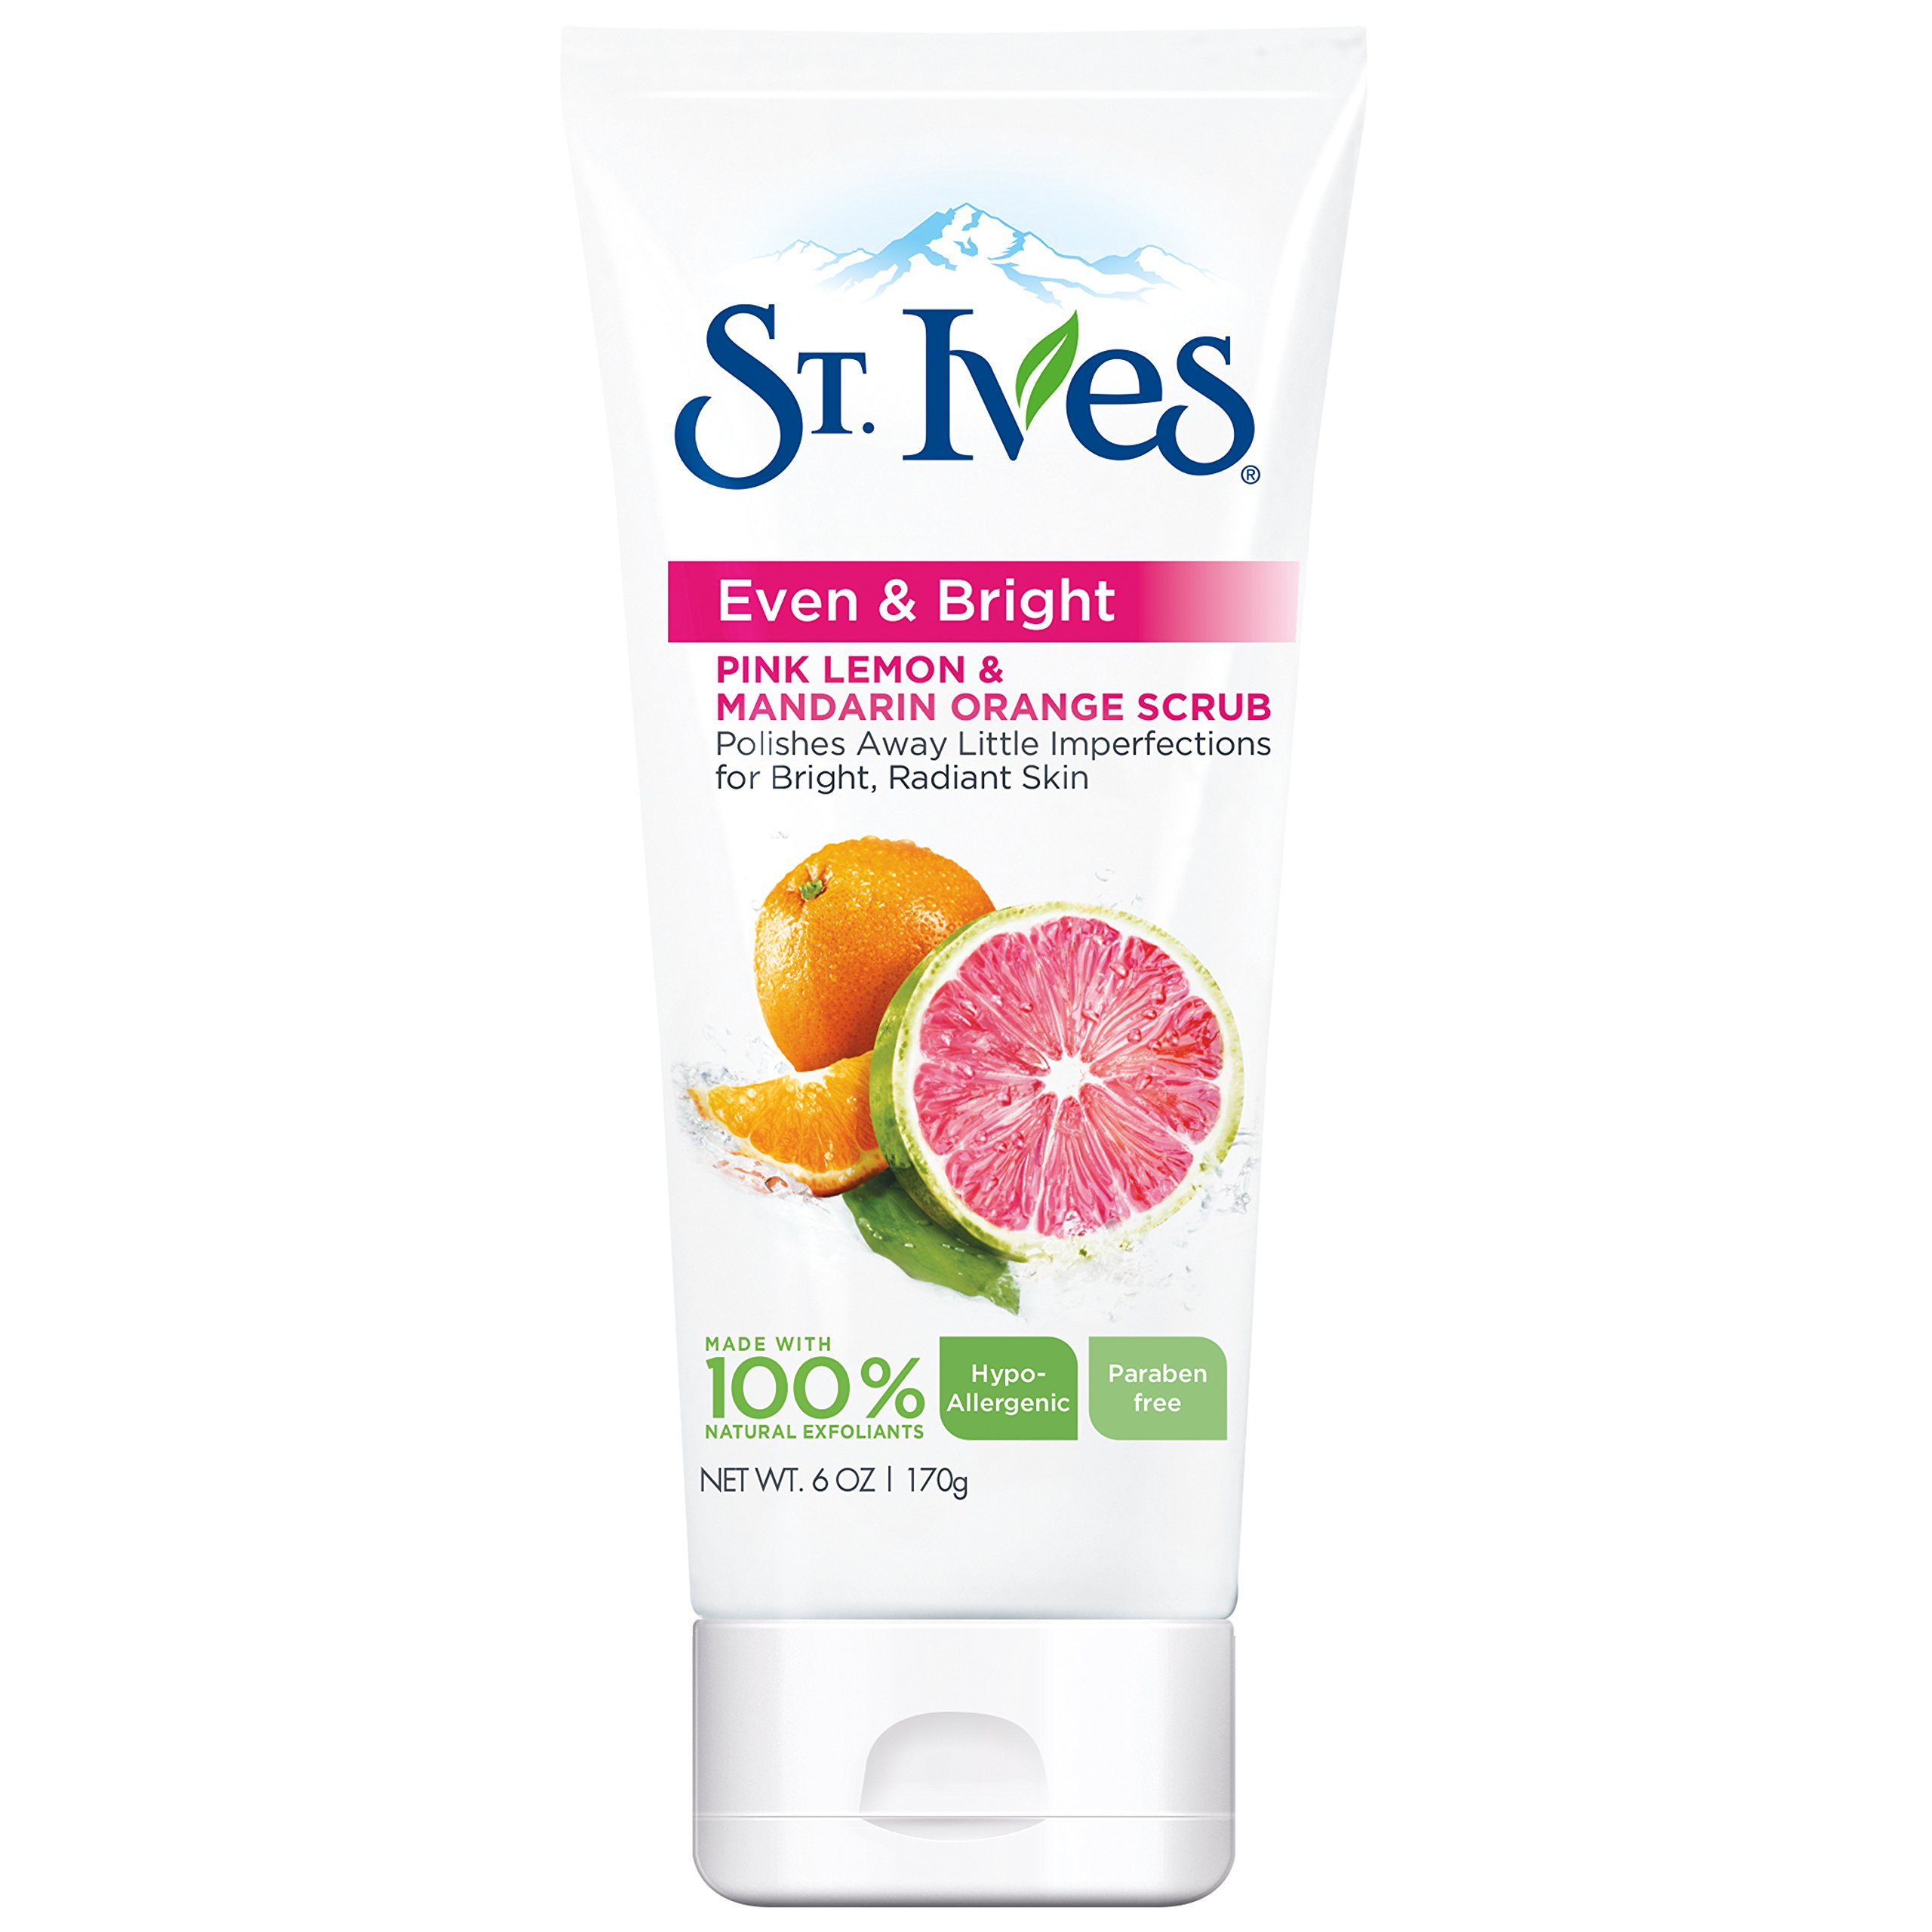 St. Ives Radiant Skin Face Scrub, Pink Lemon and Mandarin Orange 6 oz